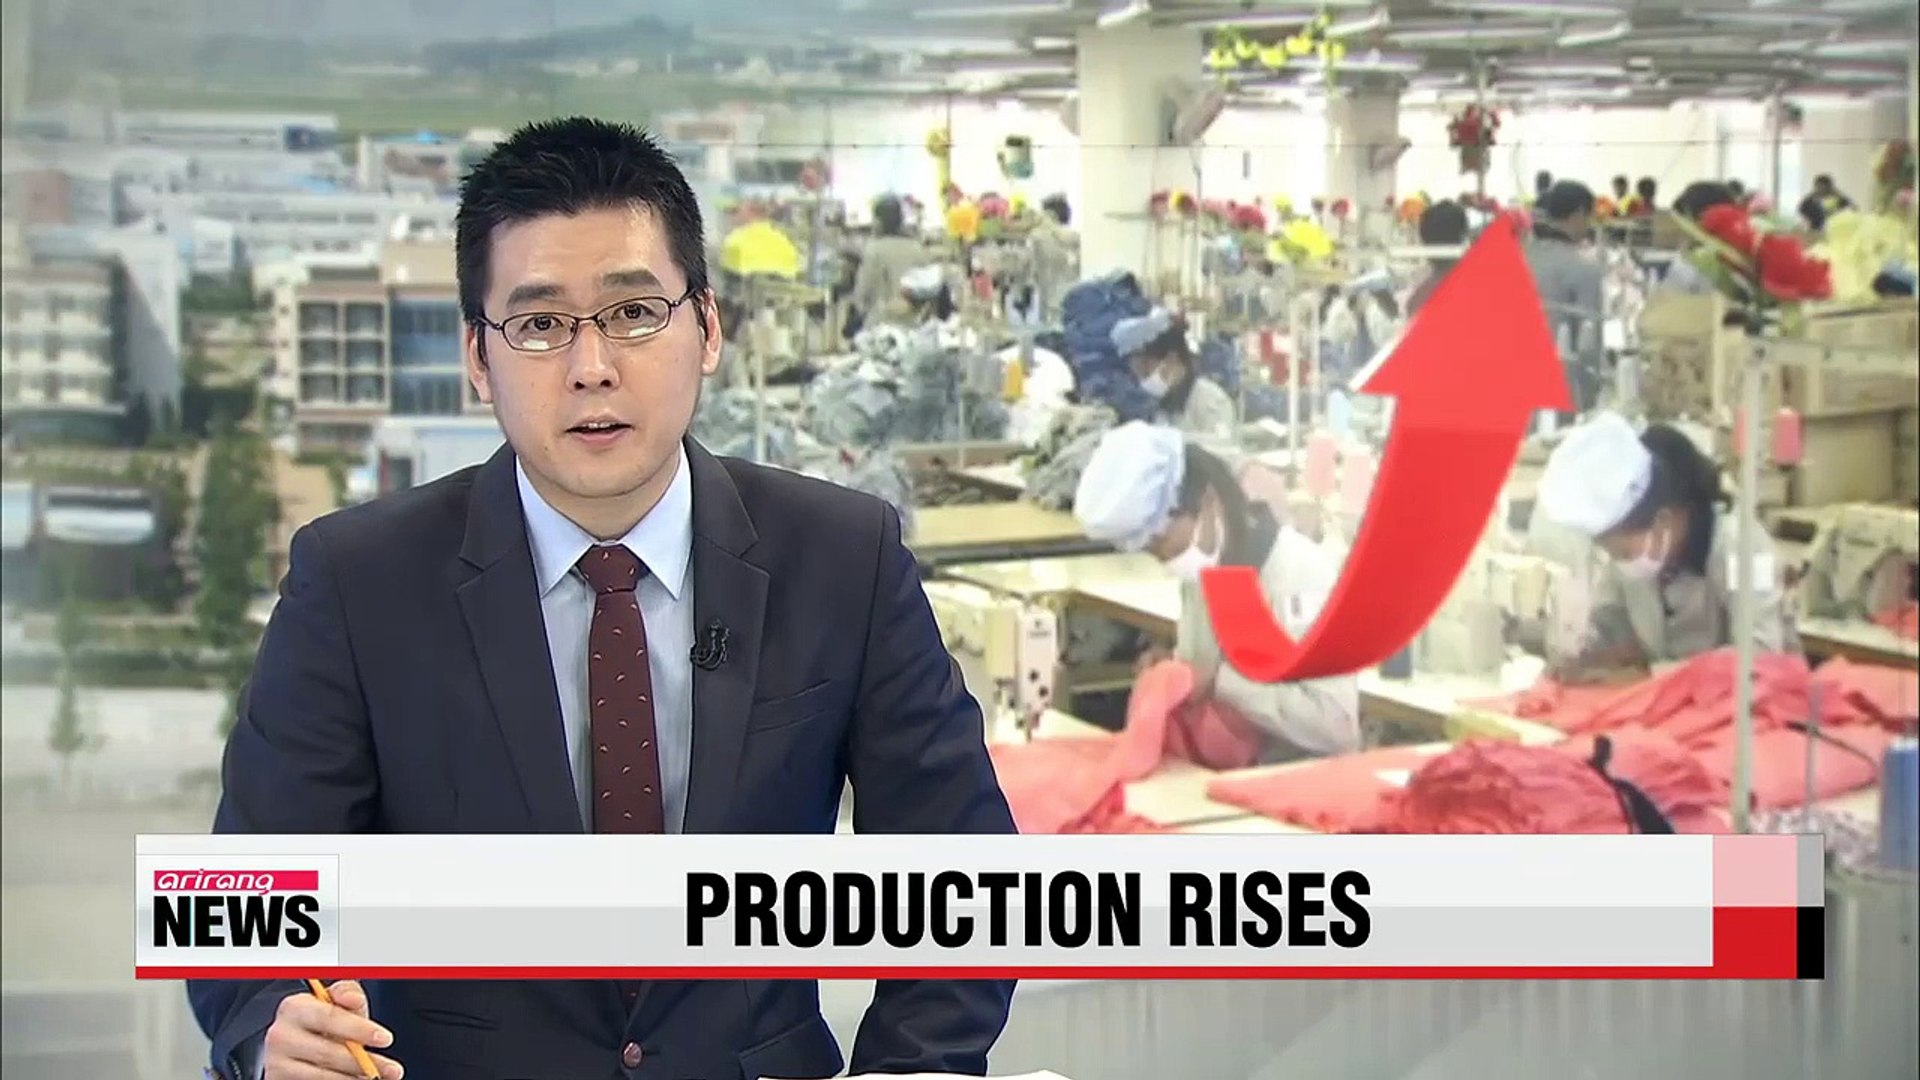 Production at Kaesong complex rises 25% despite wage tussle